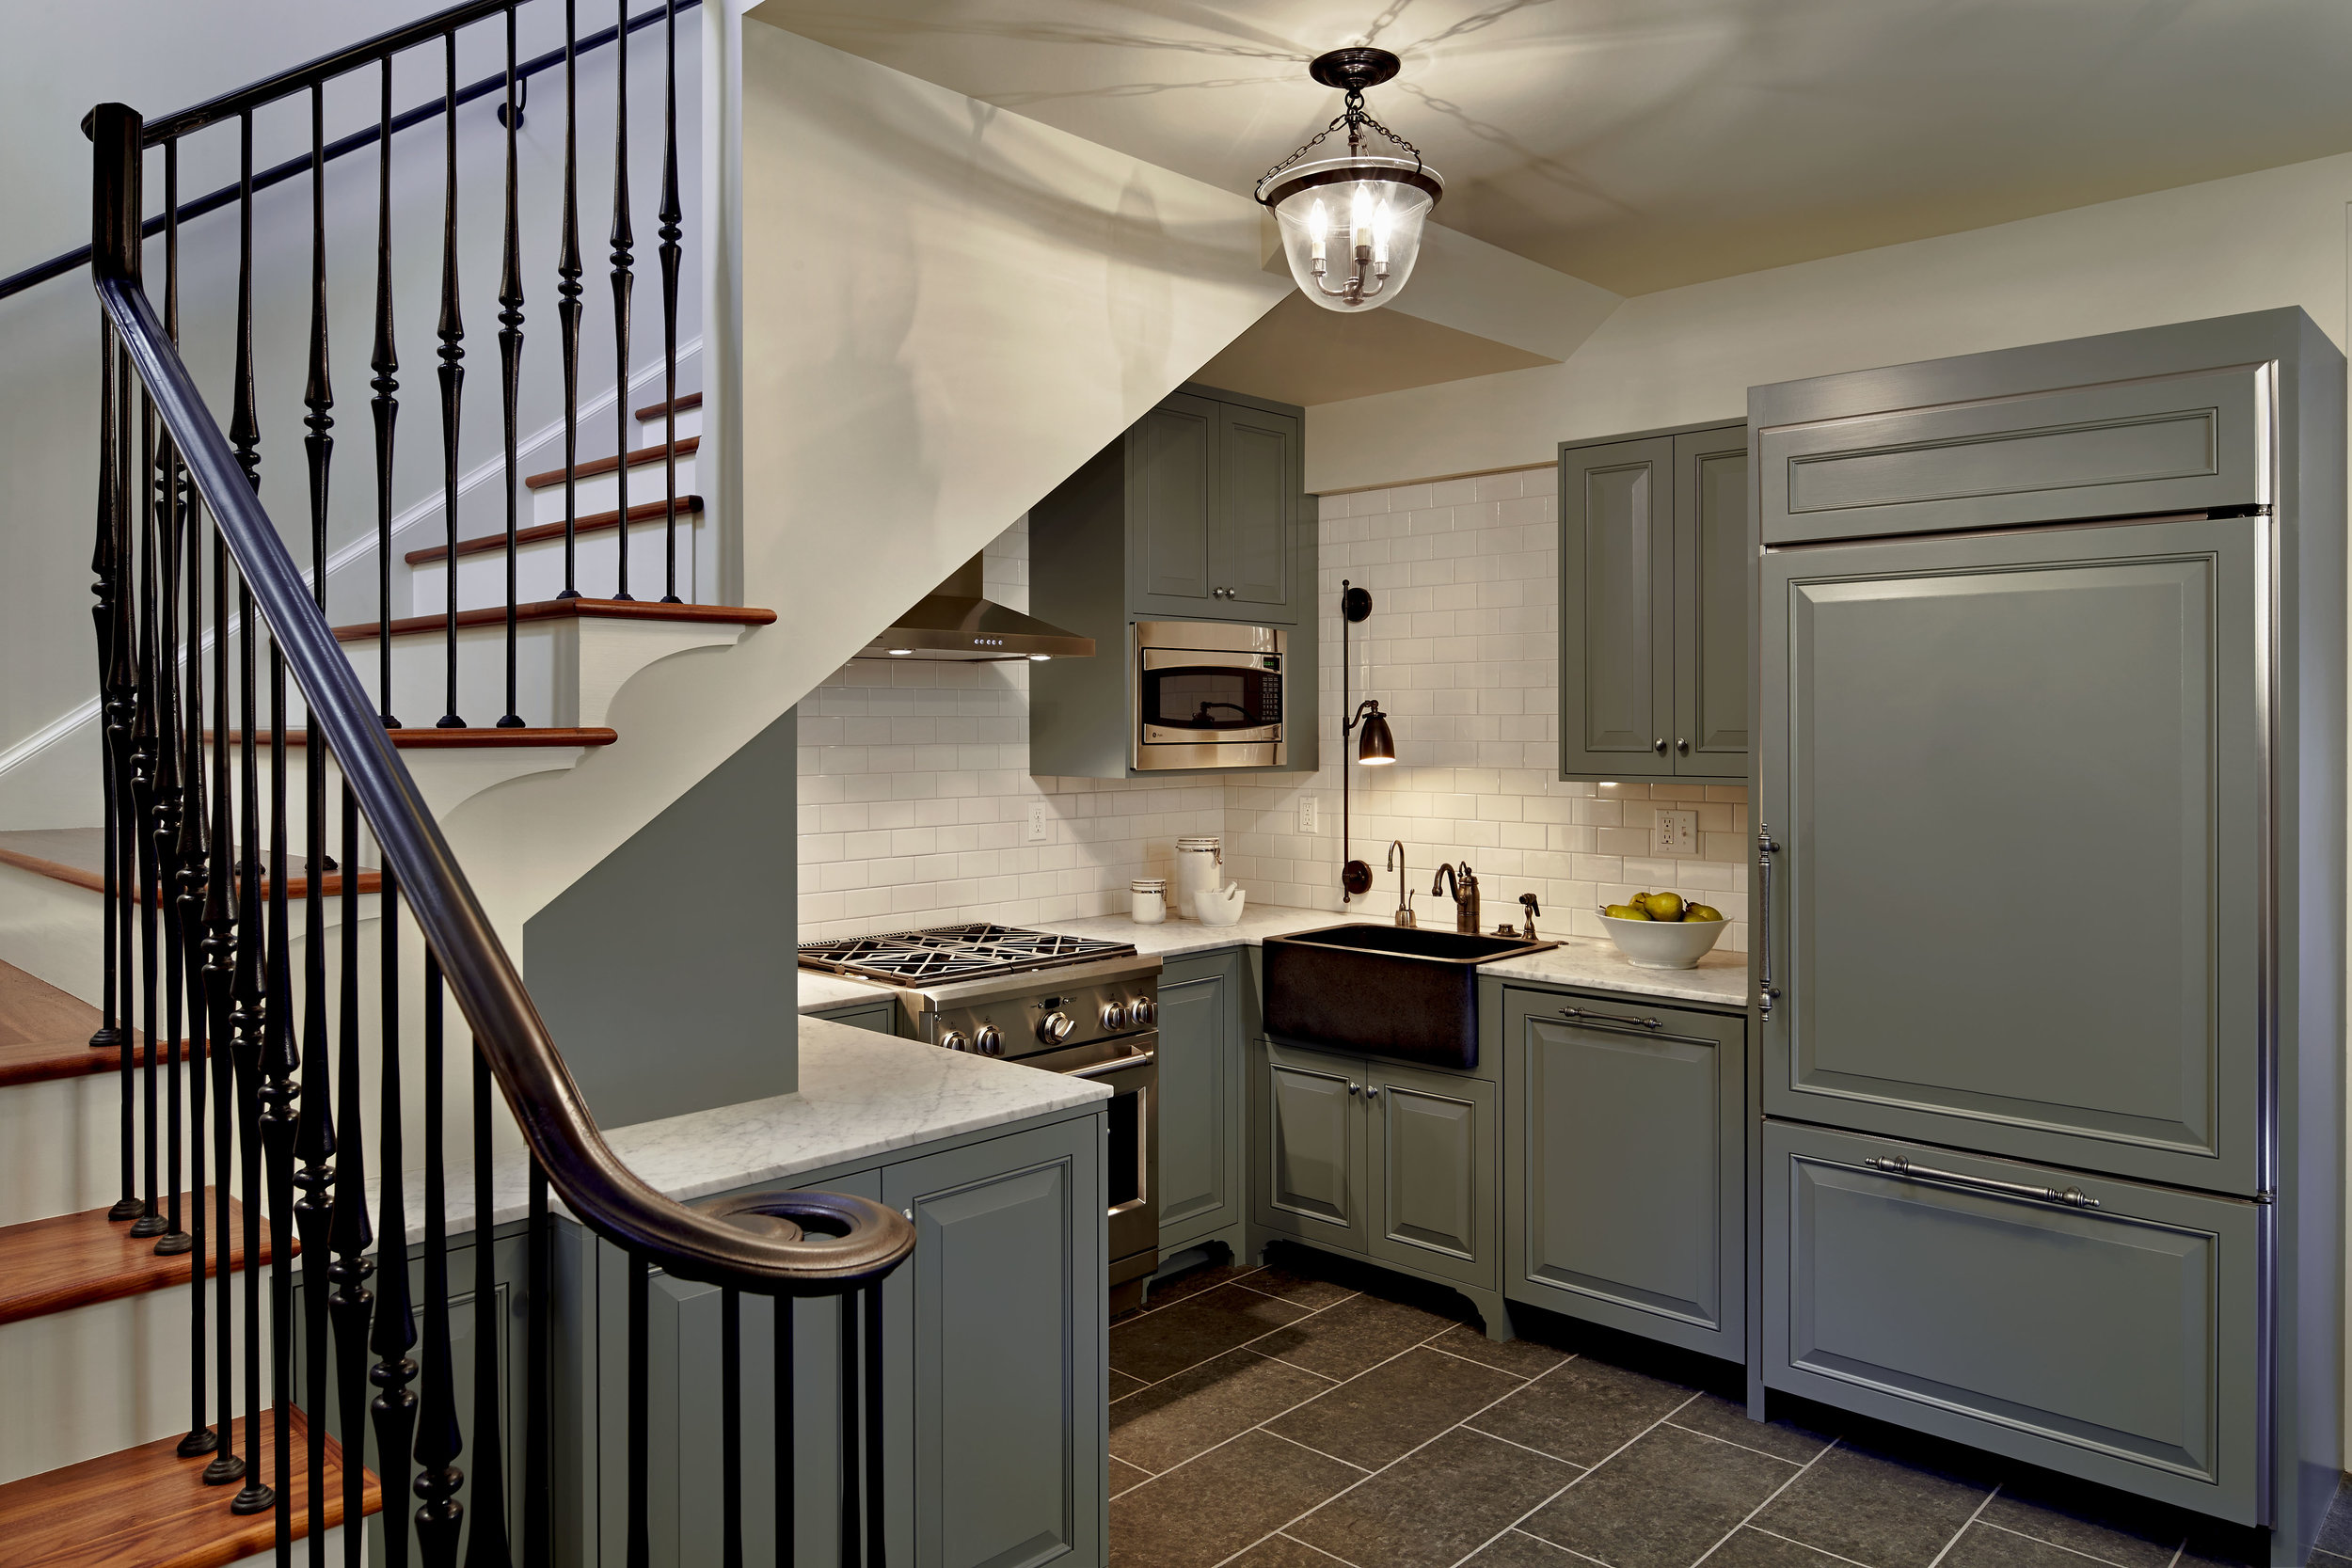 Hyde Evans Design_Interior Design Seattle_Kitchen and Bath Design_Medina_02.jpg